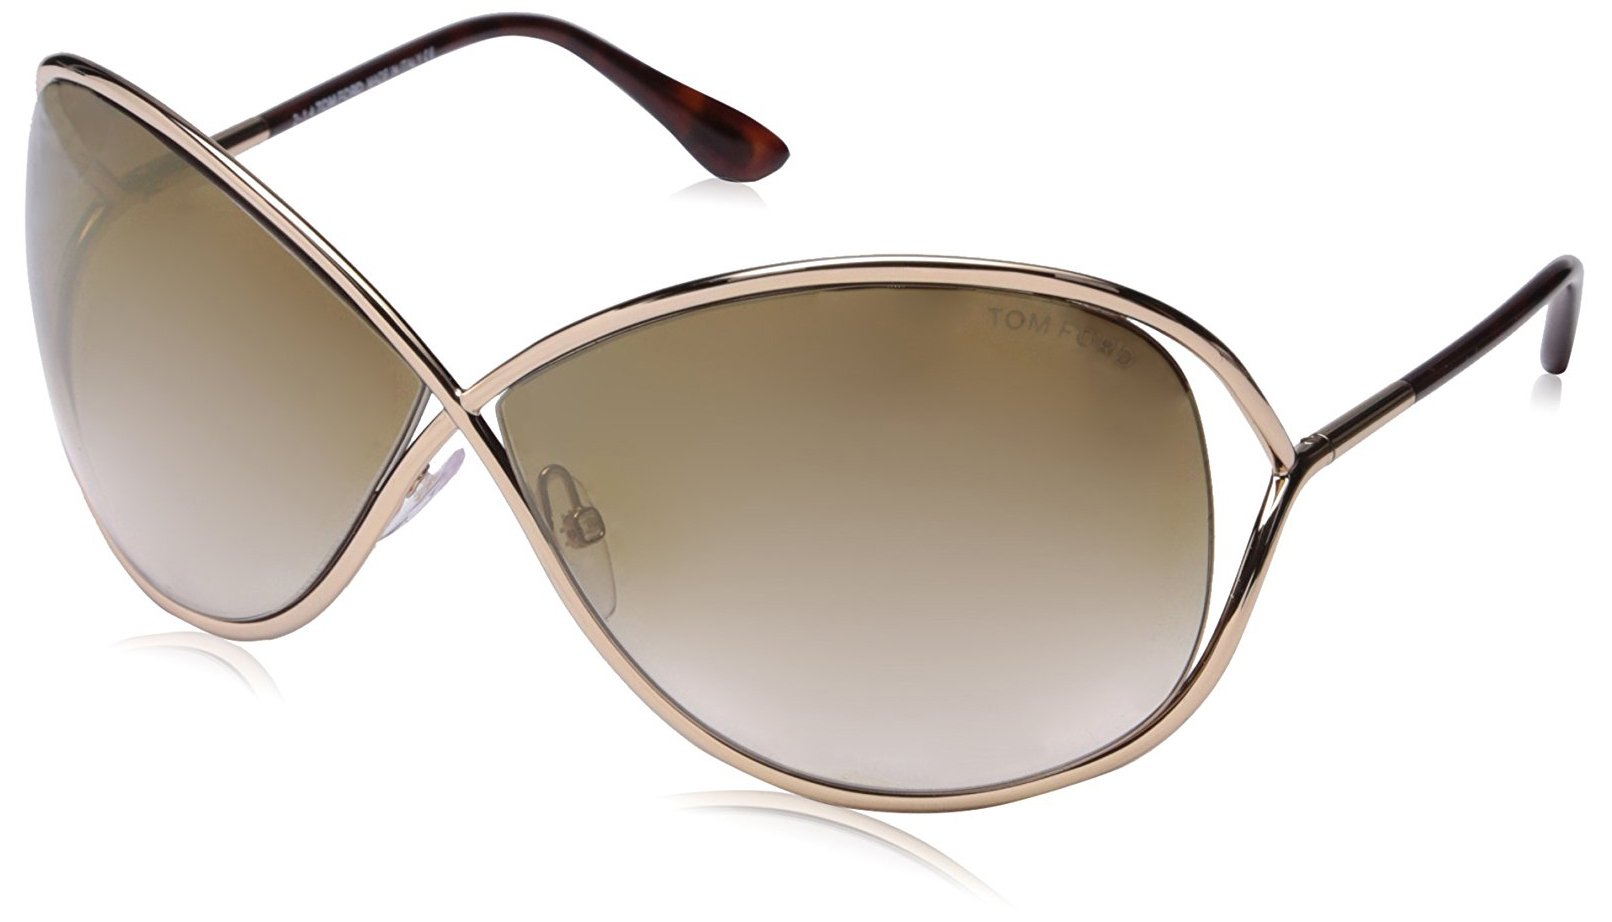 Tom Ford Women's FT0130 Sunglasses, Shiny Rose Gold